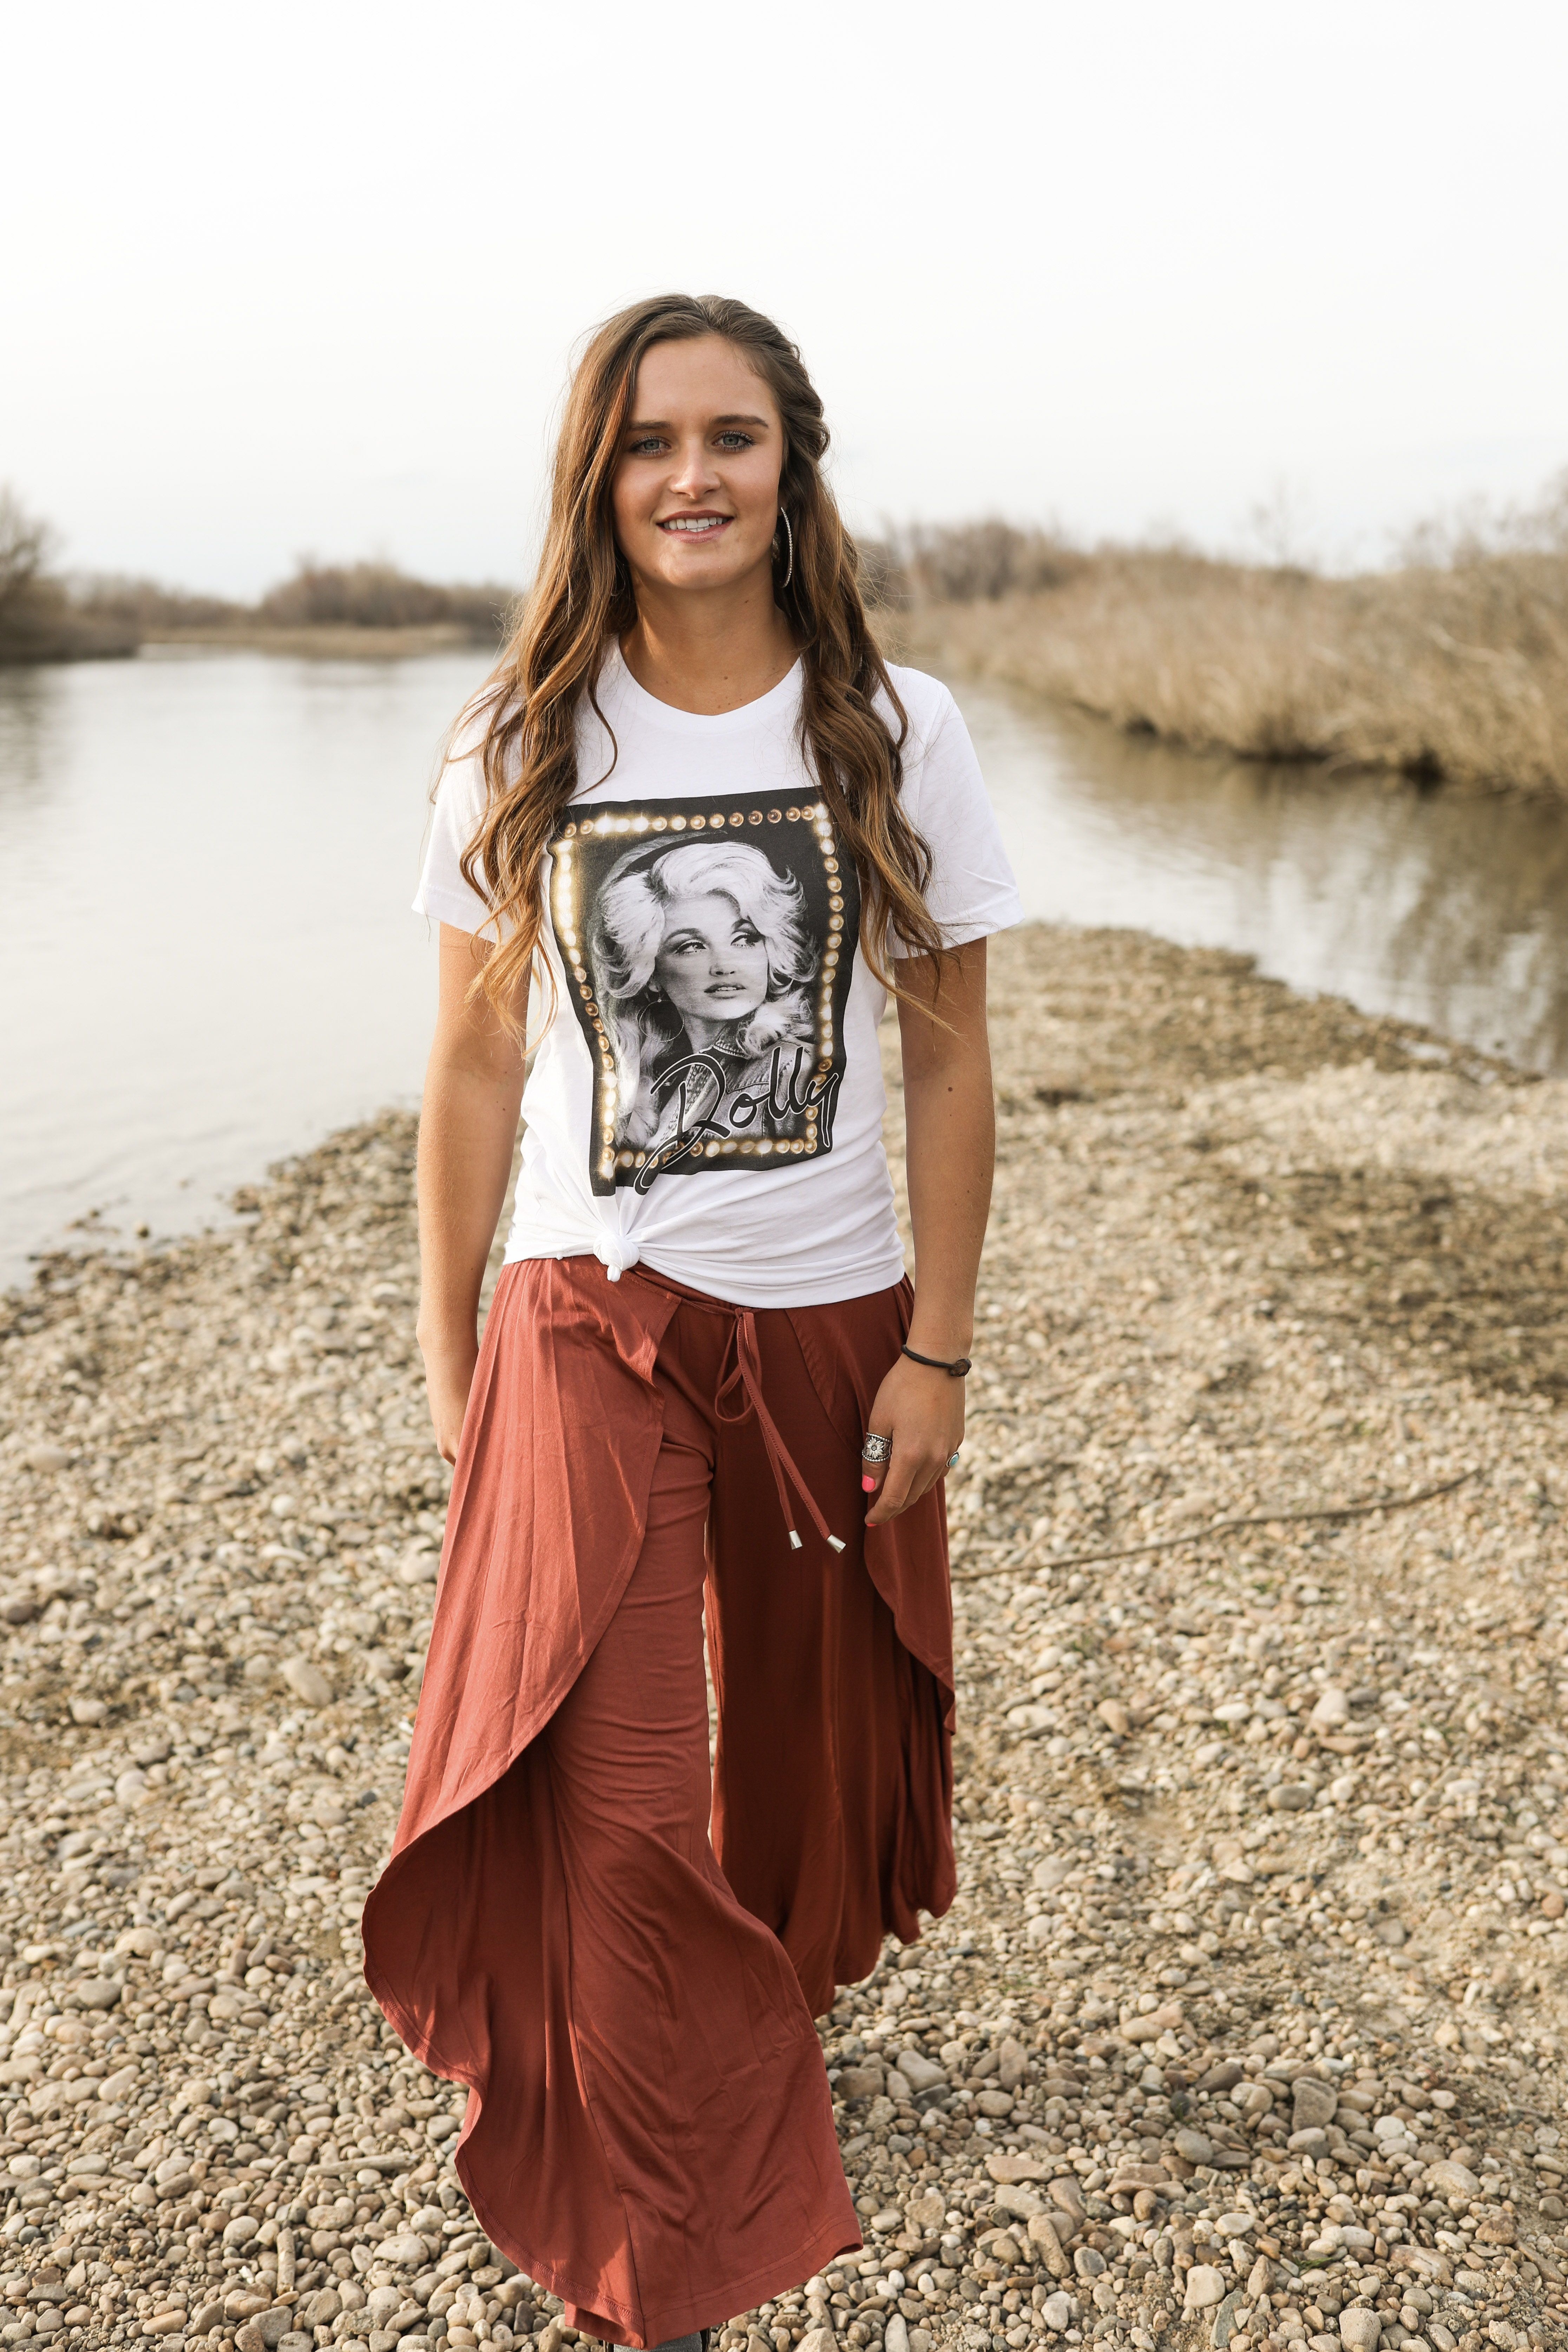 During this time lets just keep a smile on and keep moving forward!!  shop this look at: frostedcowgirls.com  #frostedcowgirls #frostedcowgirlsboutique #boutique #idahoboutique #spring #springfashion #fashionoutfits #dolly #dollytee